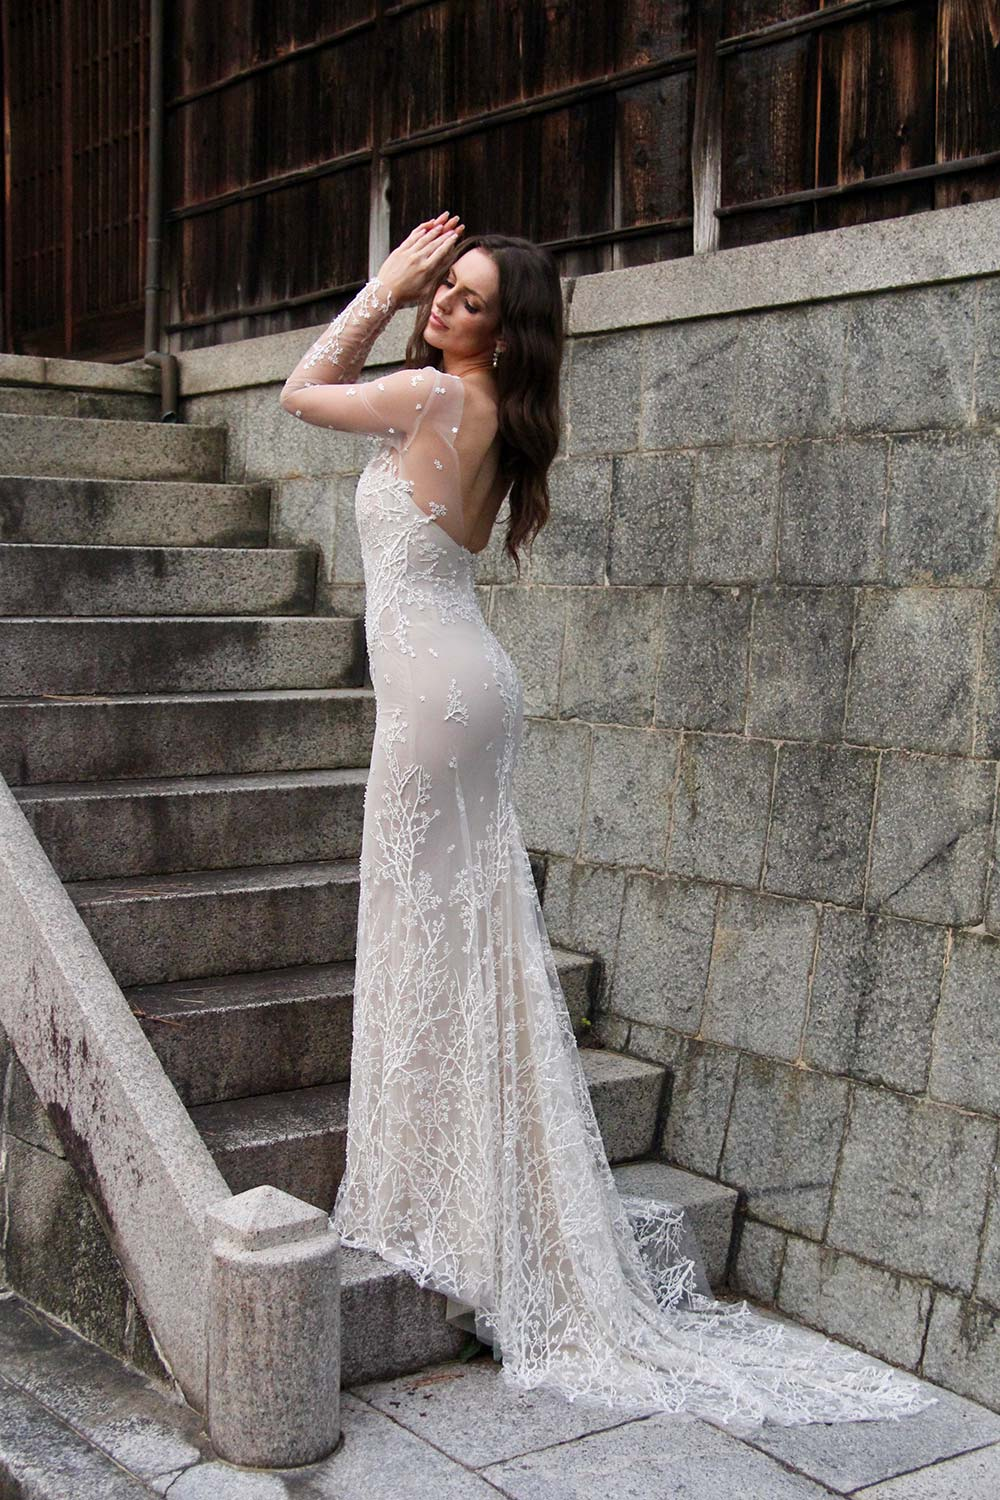 Female model wearing Vinka Design An Oriental Affair Wedding Dress. On the stairs to a japanese temple the back detail of a form-fitting, semi-sheer gown with a high neckline and fully beaded blossom lace gown.